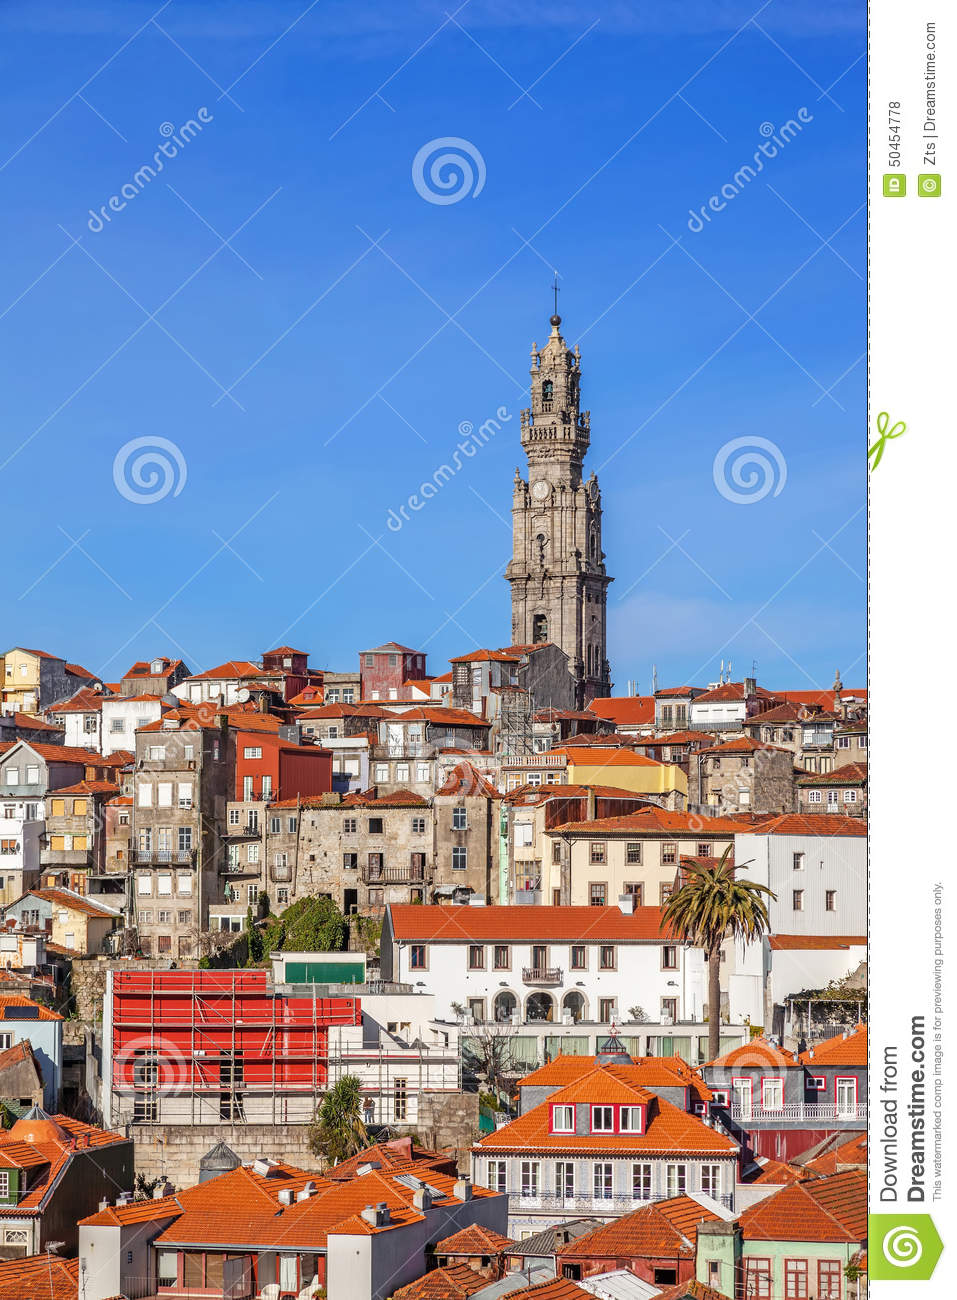 The Iconic Clerigos Tower In The City Of Porto, Portugal Stock.